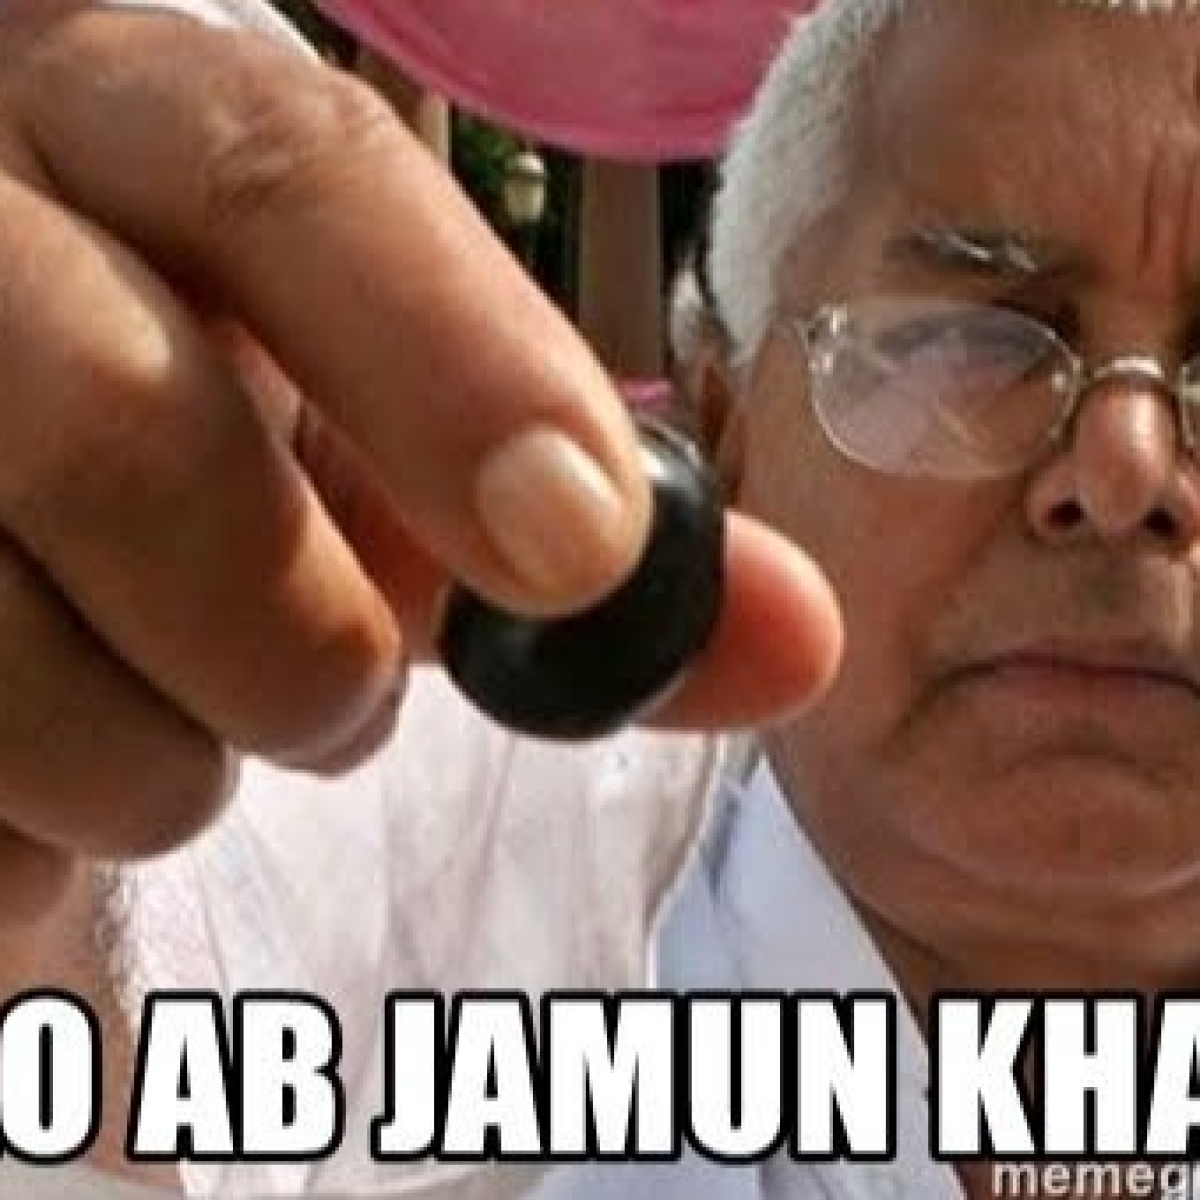 CBSE and ICSE Exams Cancelled: The best frontbencher, backbencher memes on Twitter